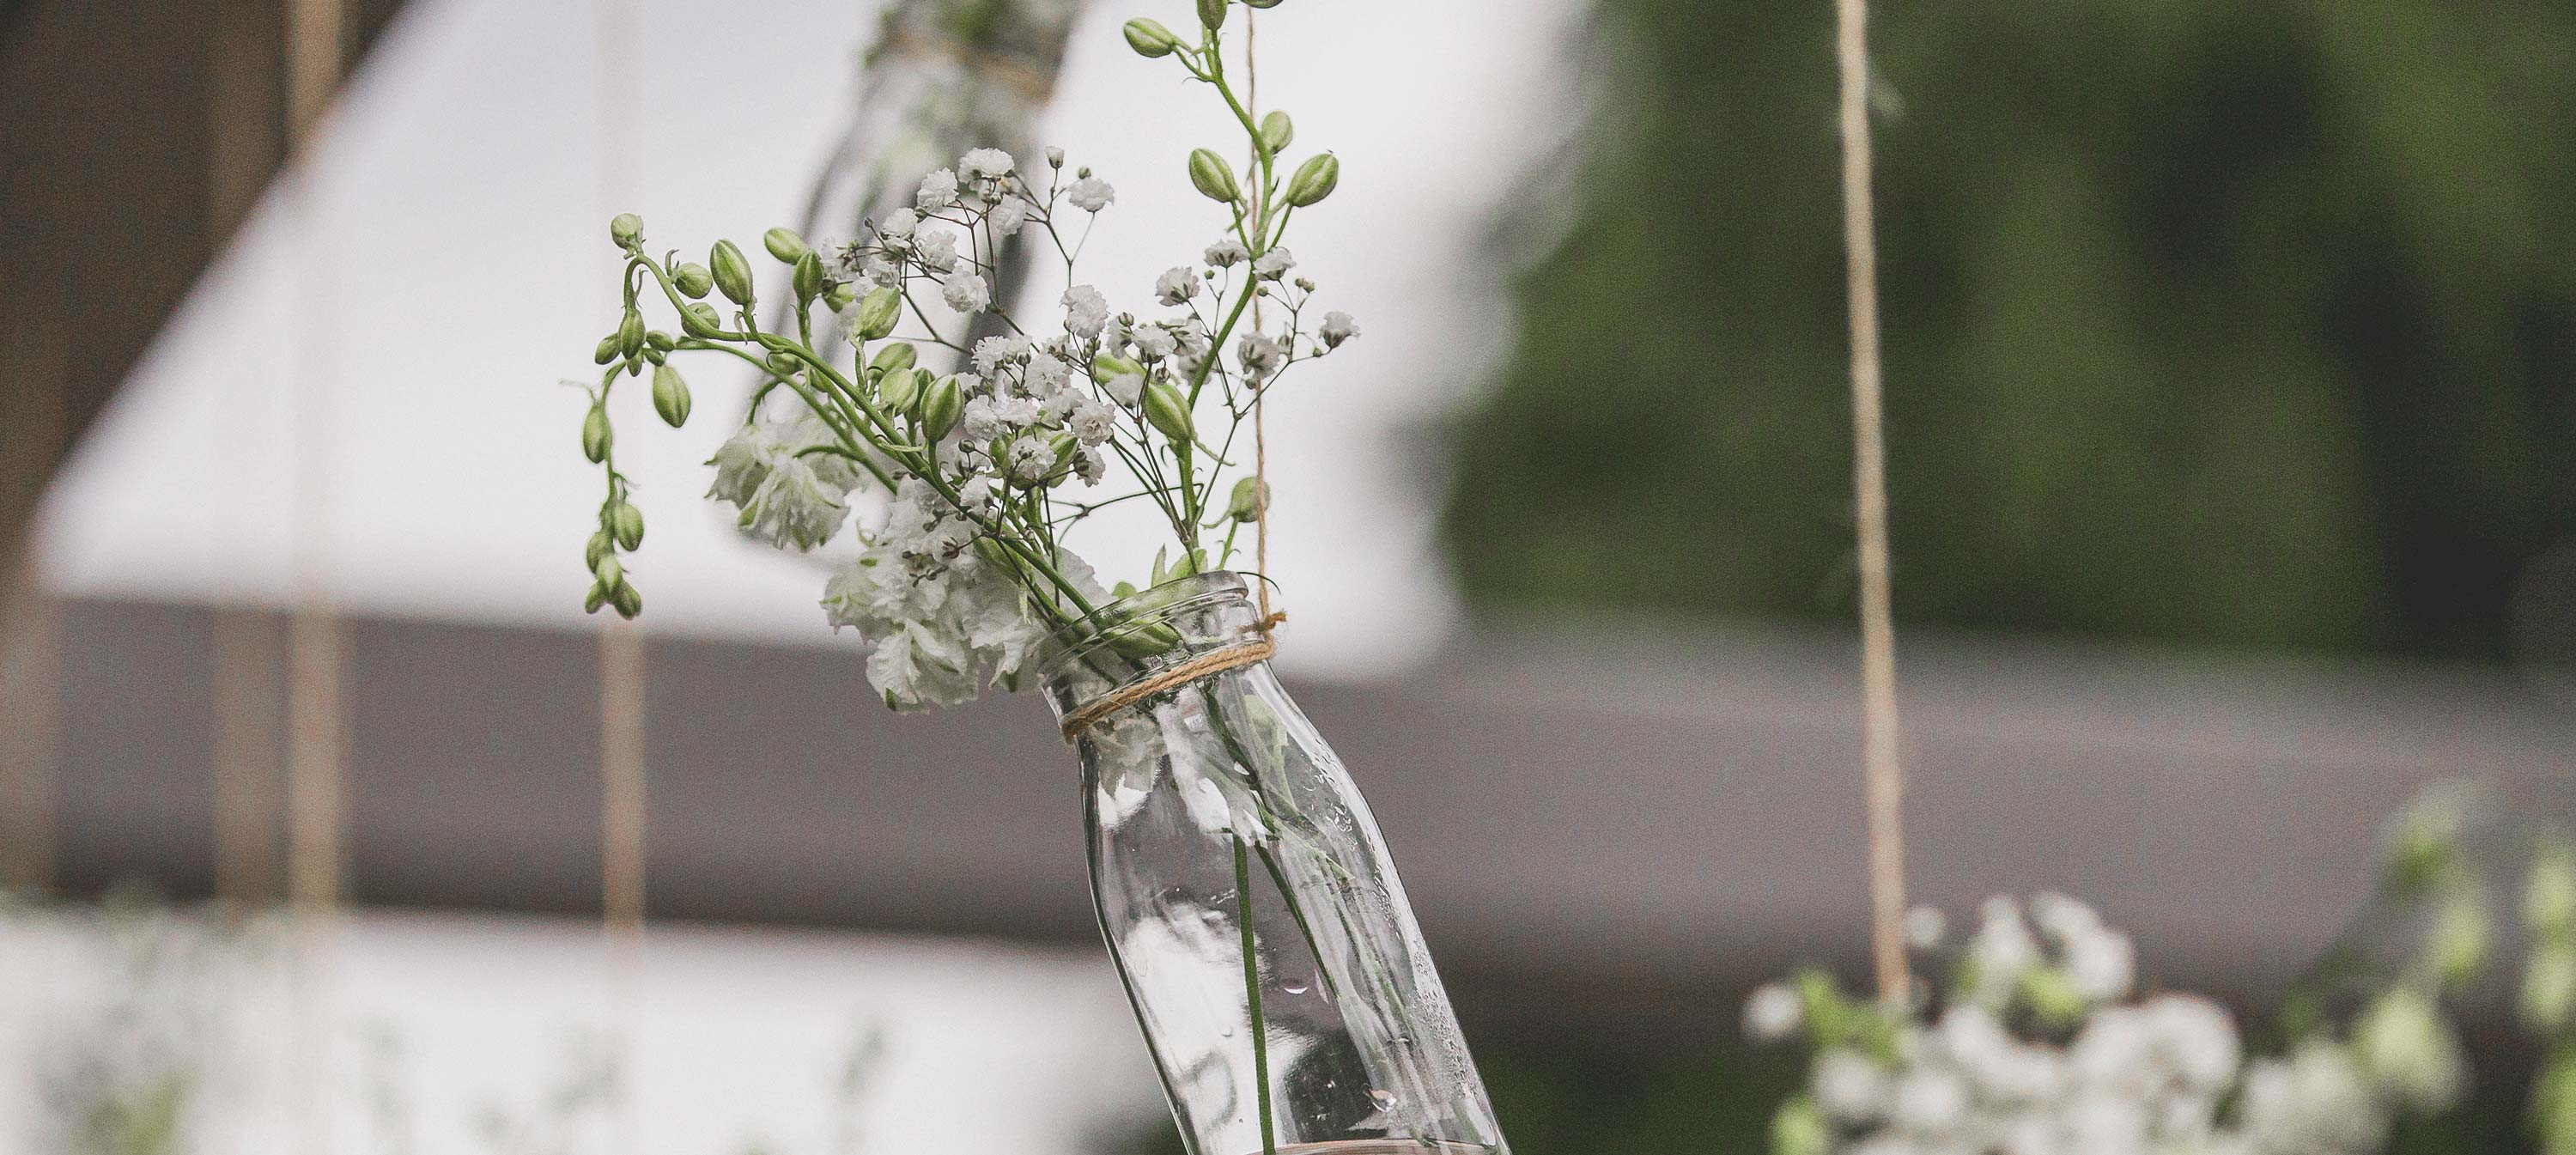 Flowers hanging in clear glass milk bottles wedding decorations